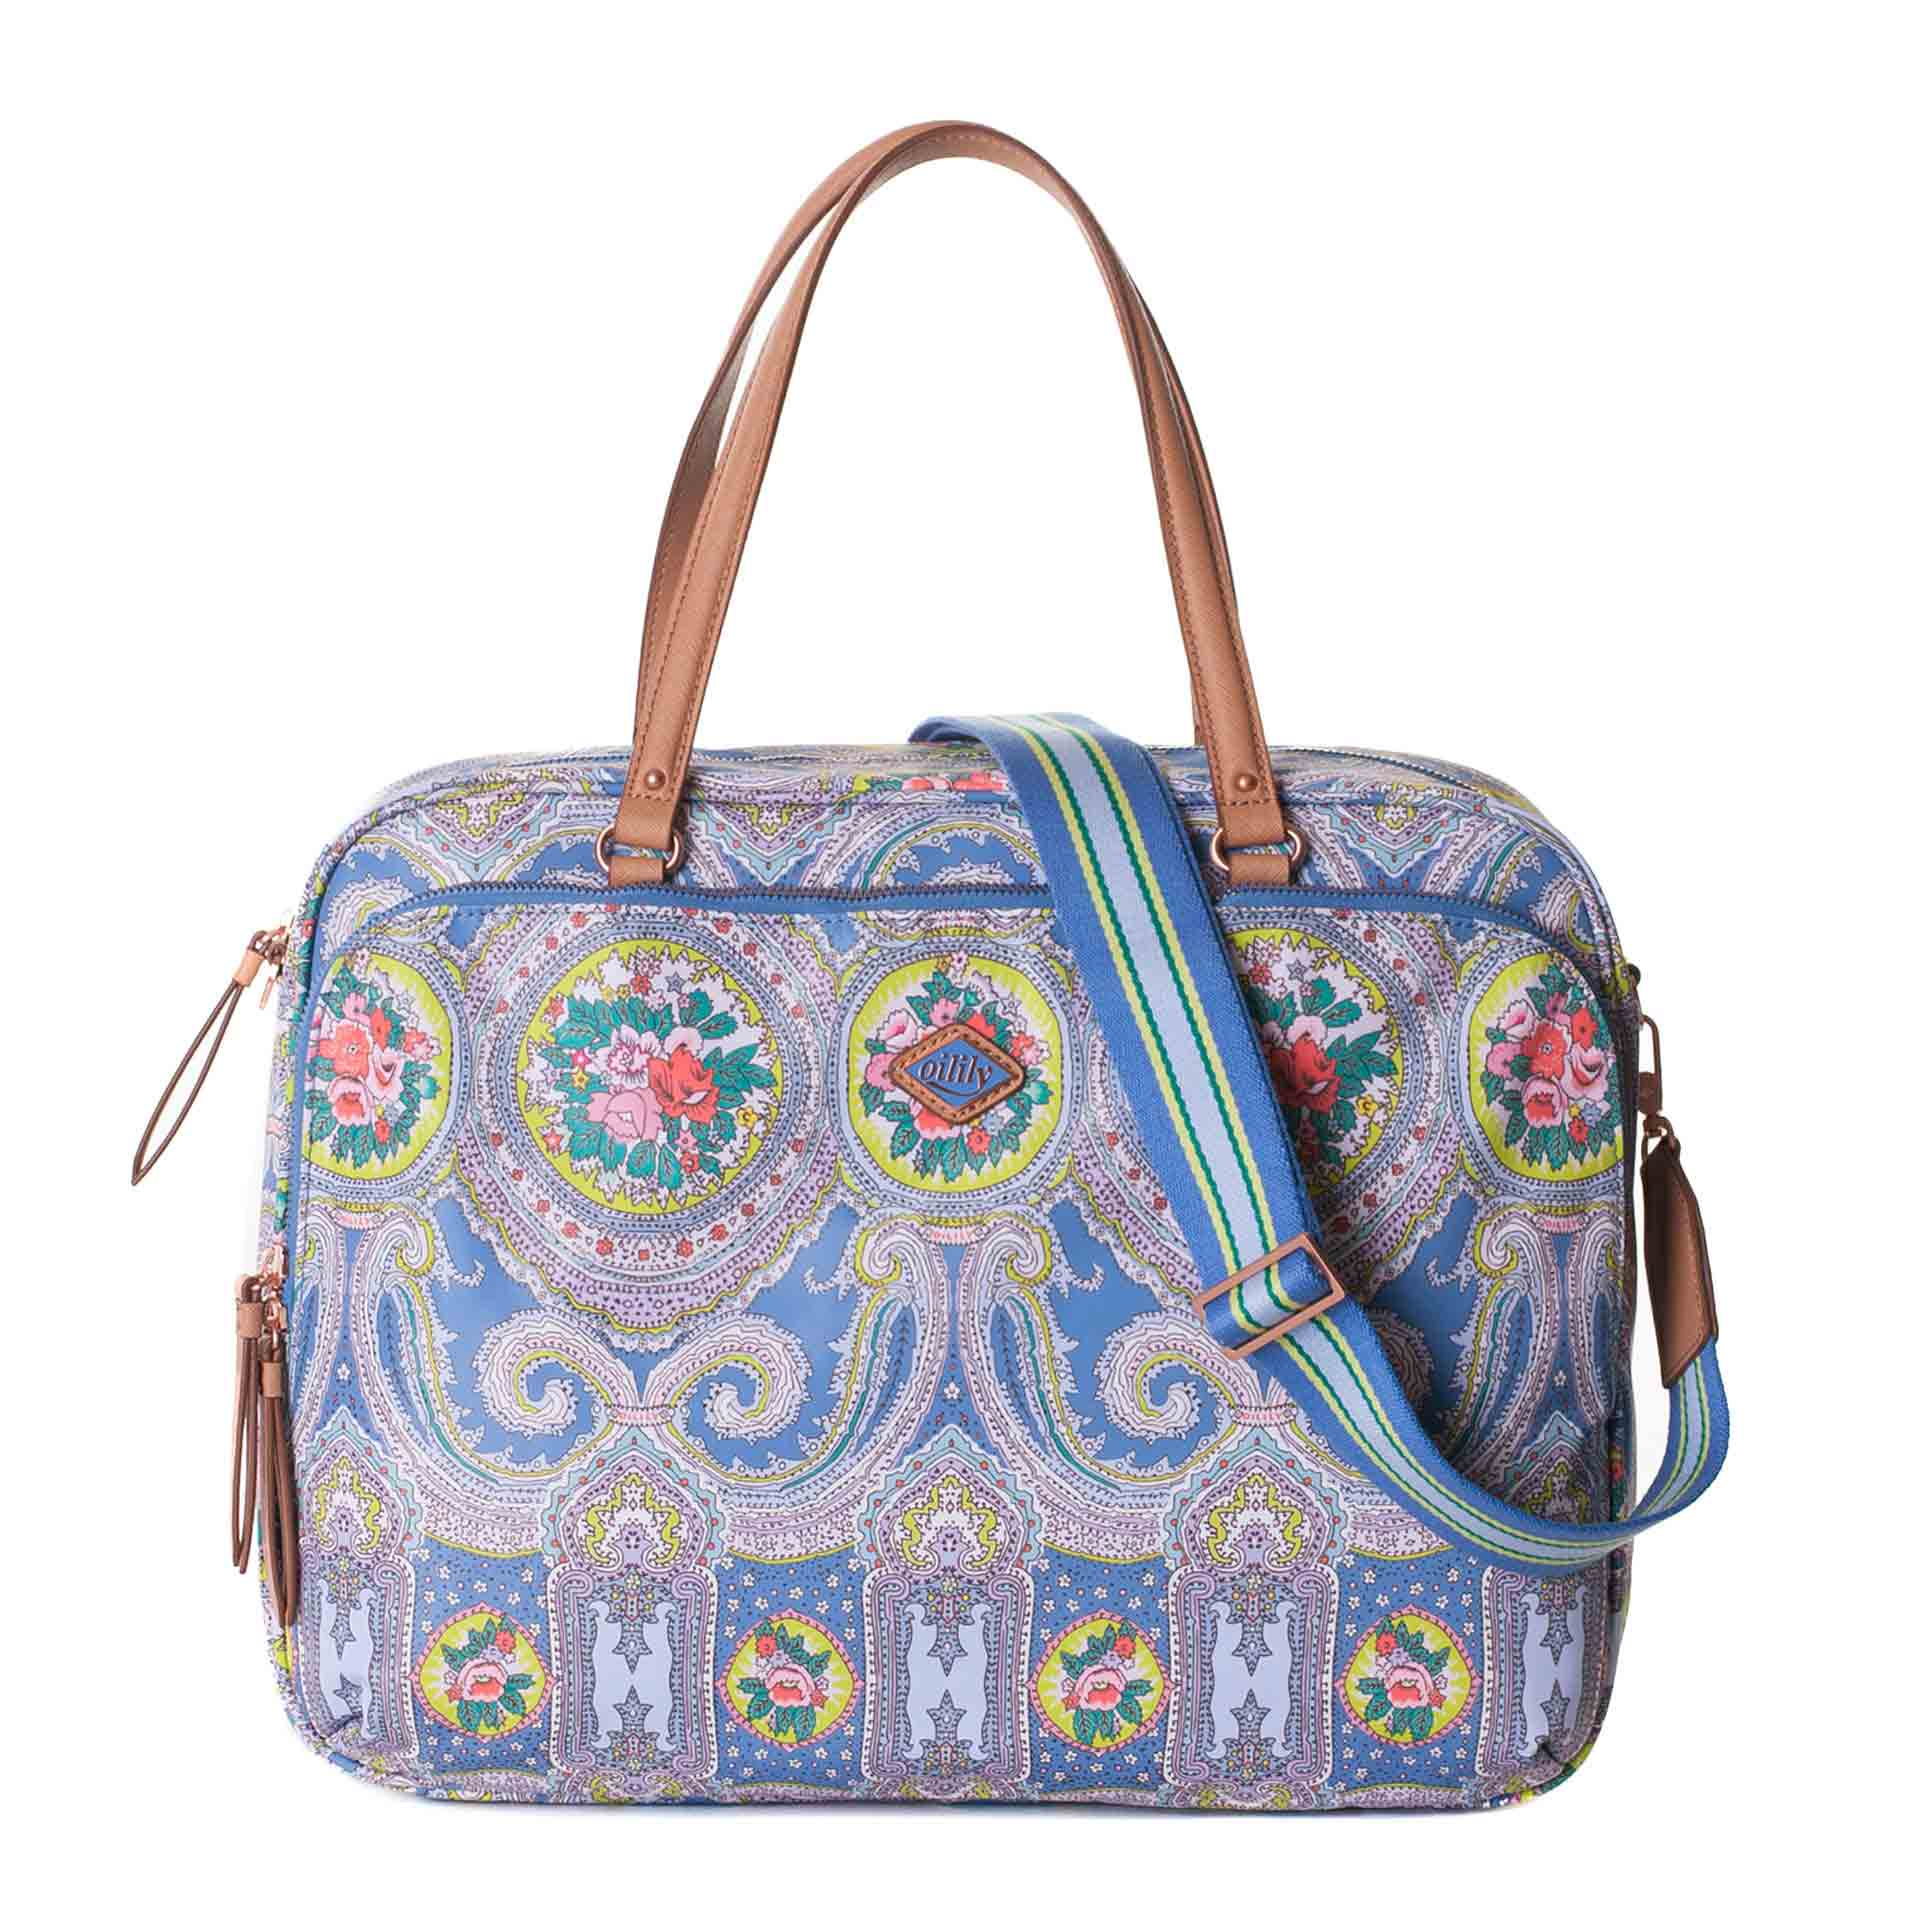 Oilily City Rose Paisley Businesstasche riviera